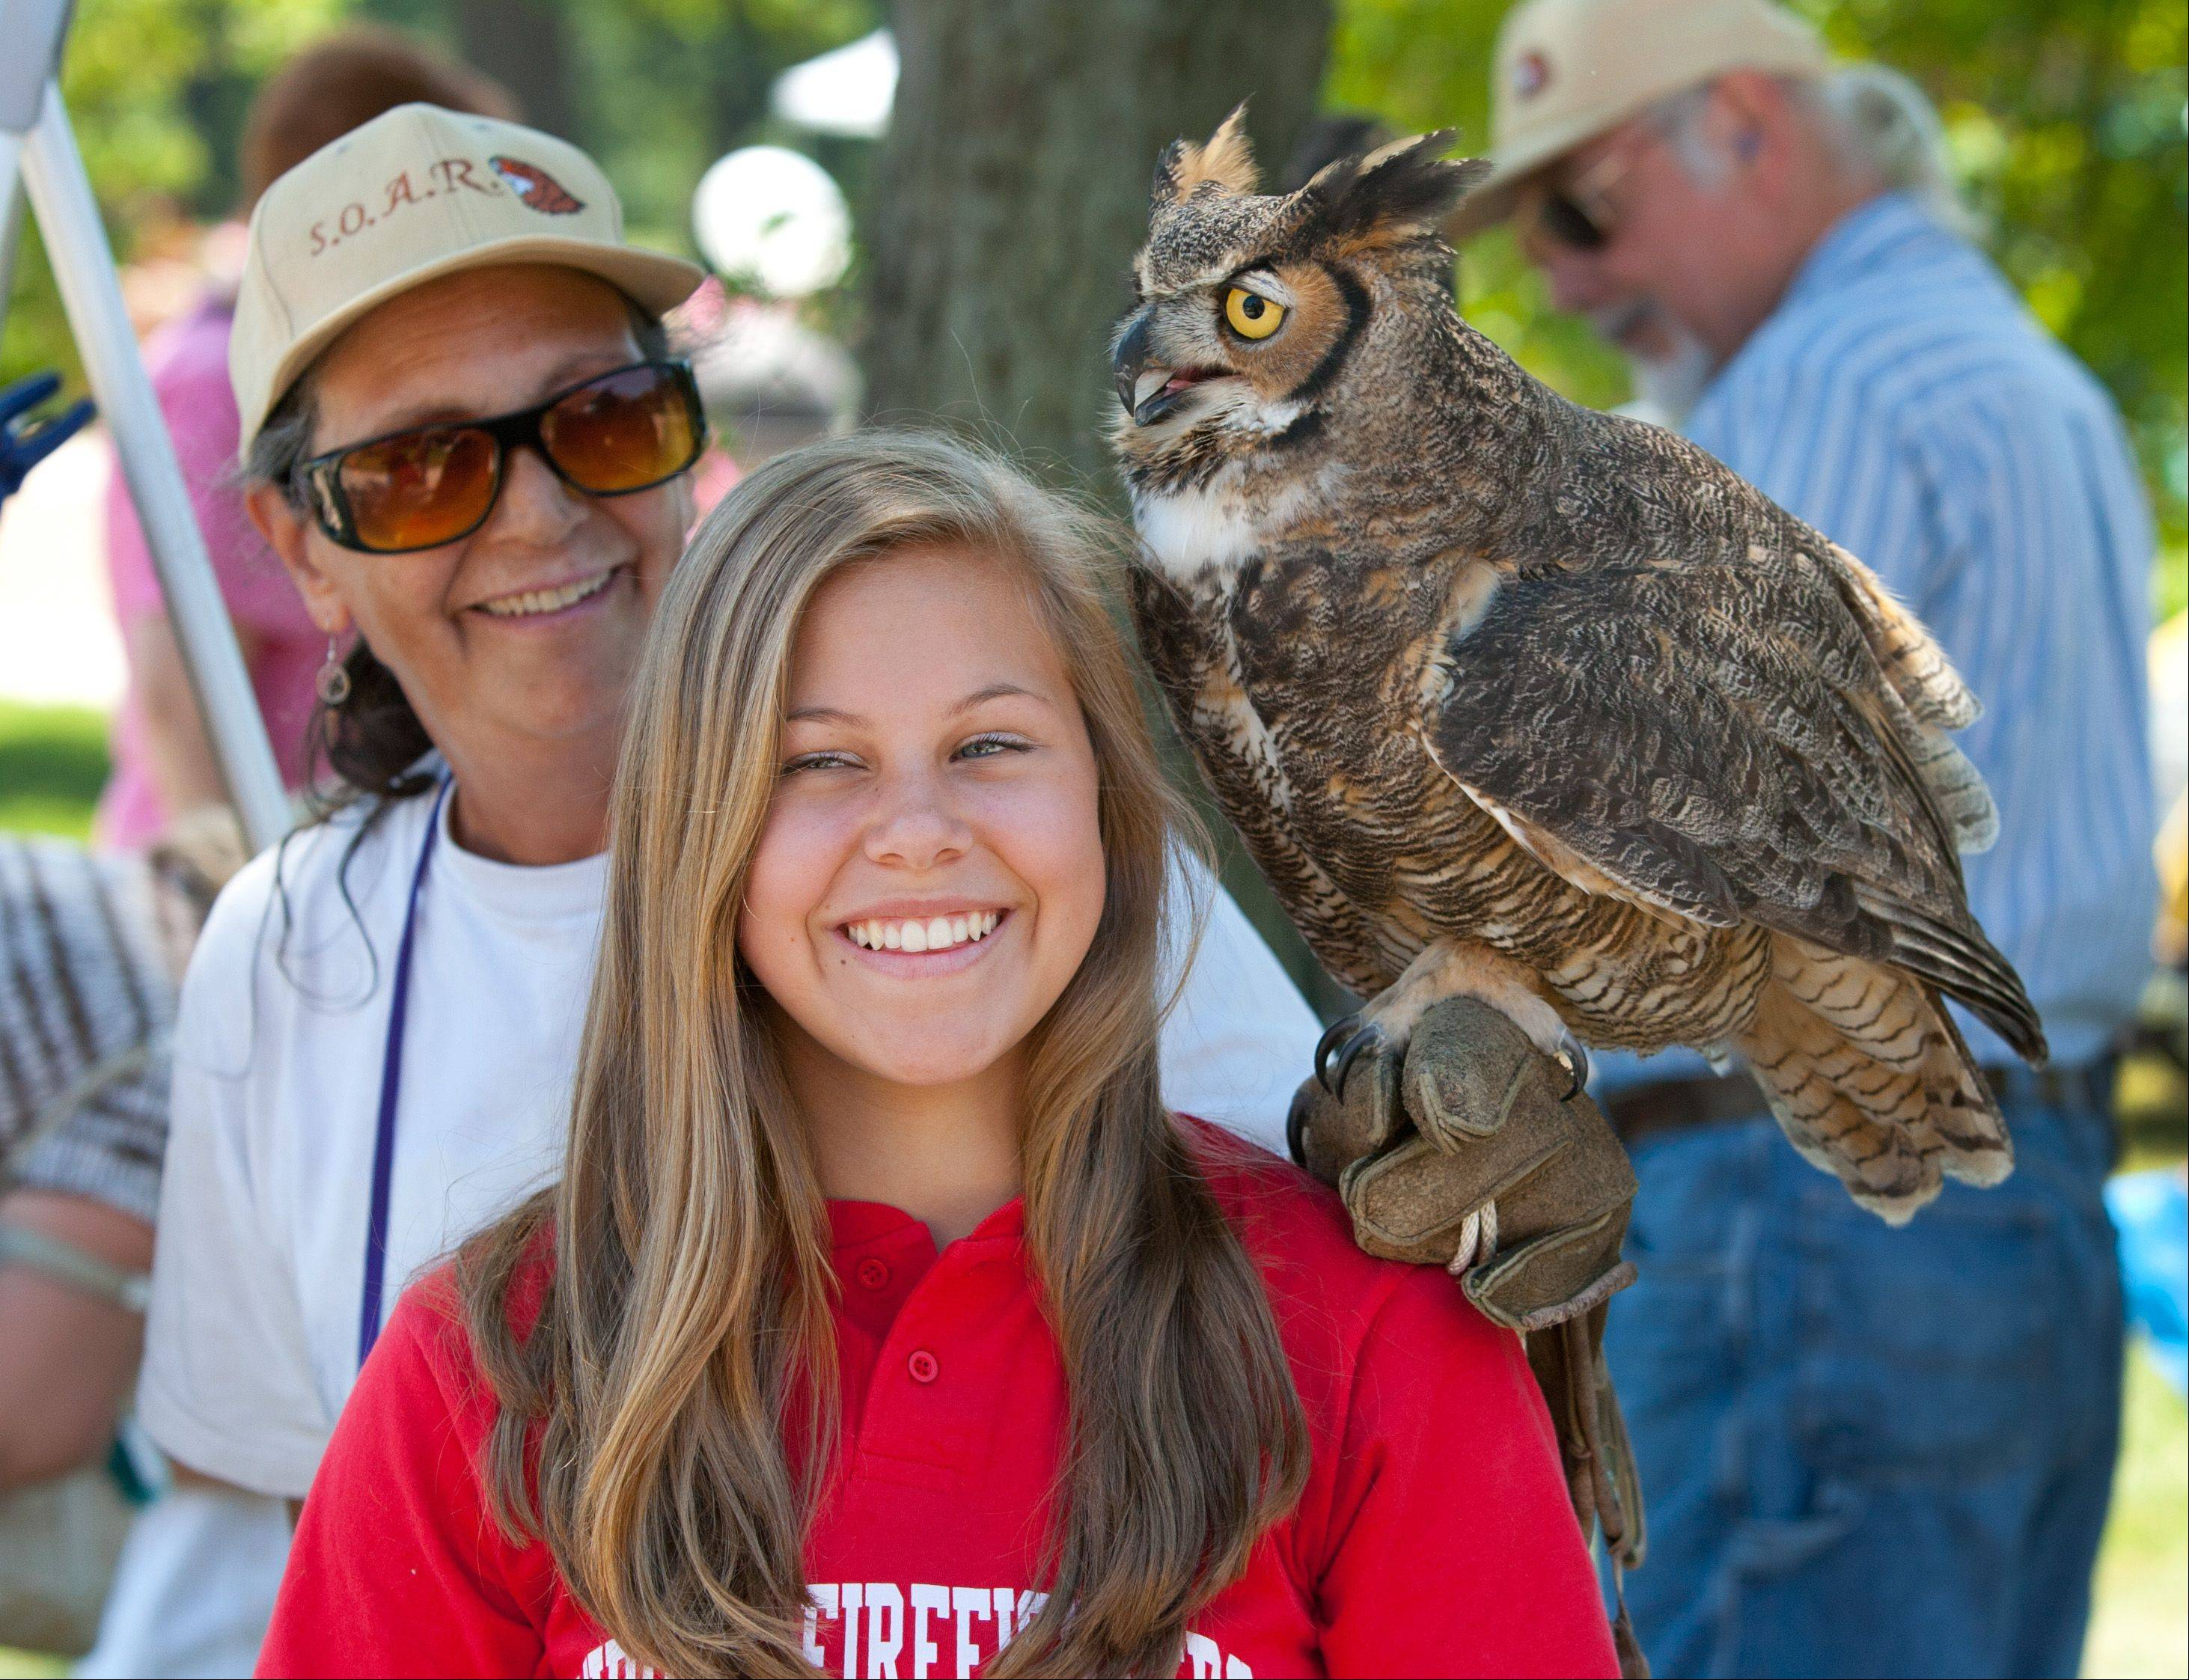 Presentations on animals such as bats, snakes, chickens and goats will be offered during the fourth annual Aurora Green Fest from 10 a.m. to 3 p.m. Saturday, June 8, at Prisco Community Center, 150 W. Illinois Ave. Last year's animal exhibits included this great horned owl, seen perching on Lindsey Muth's shoulder.